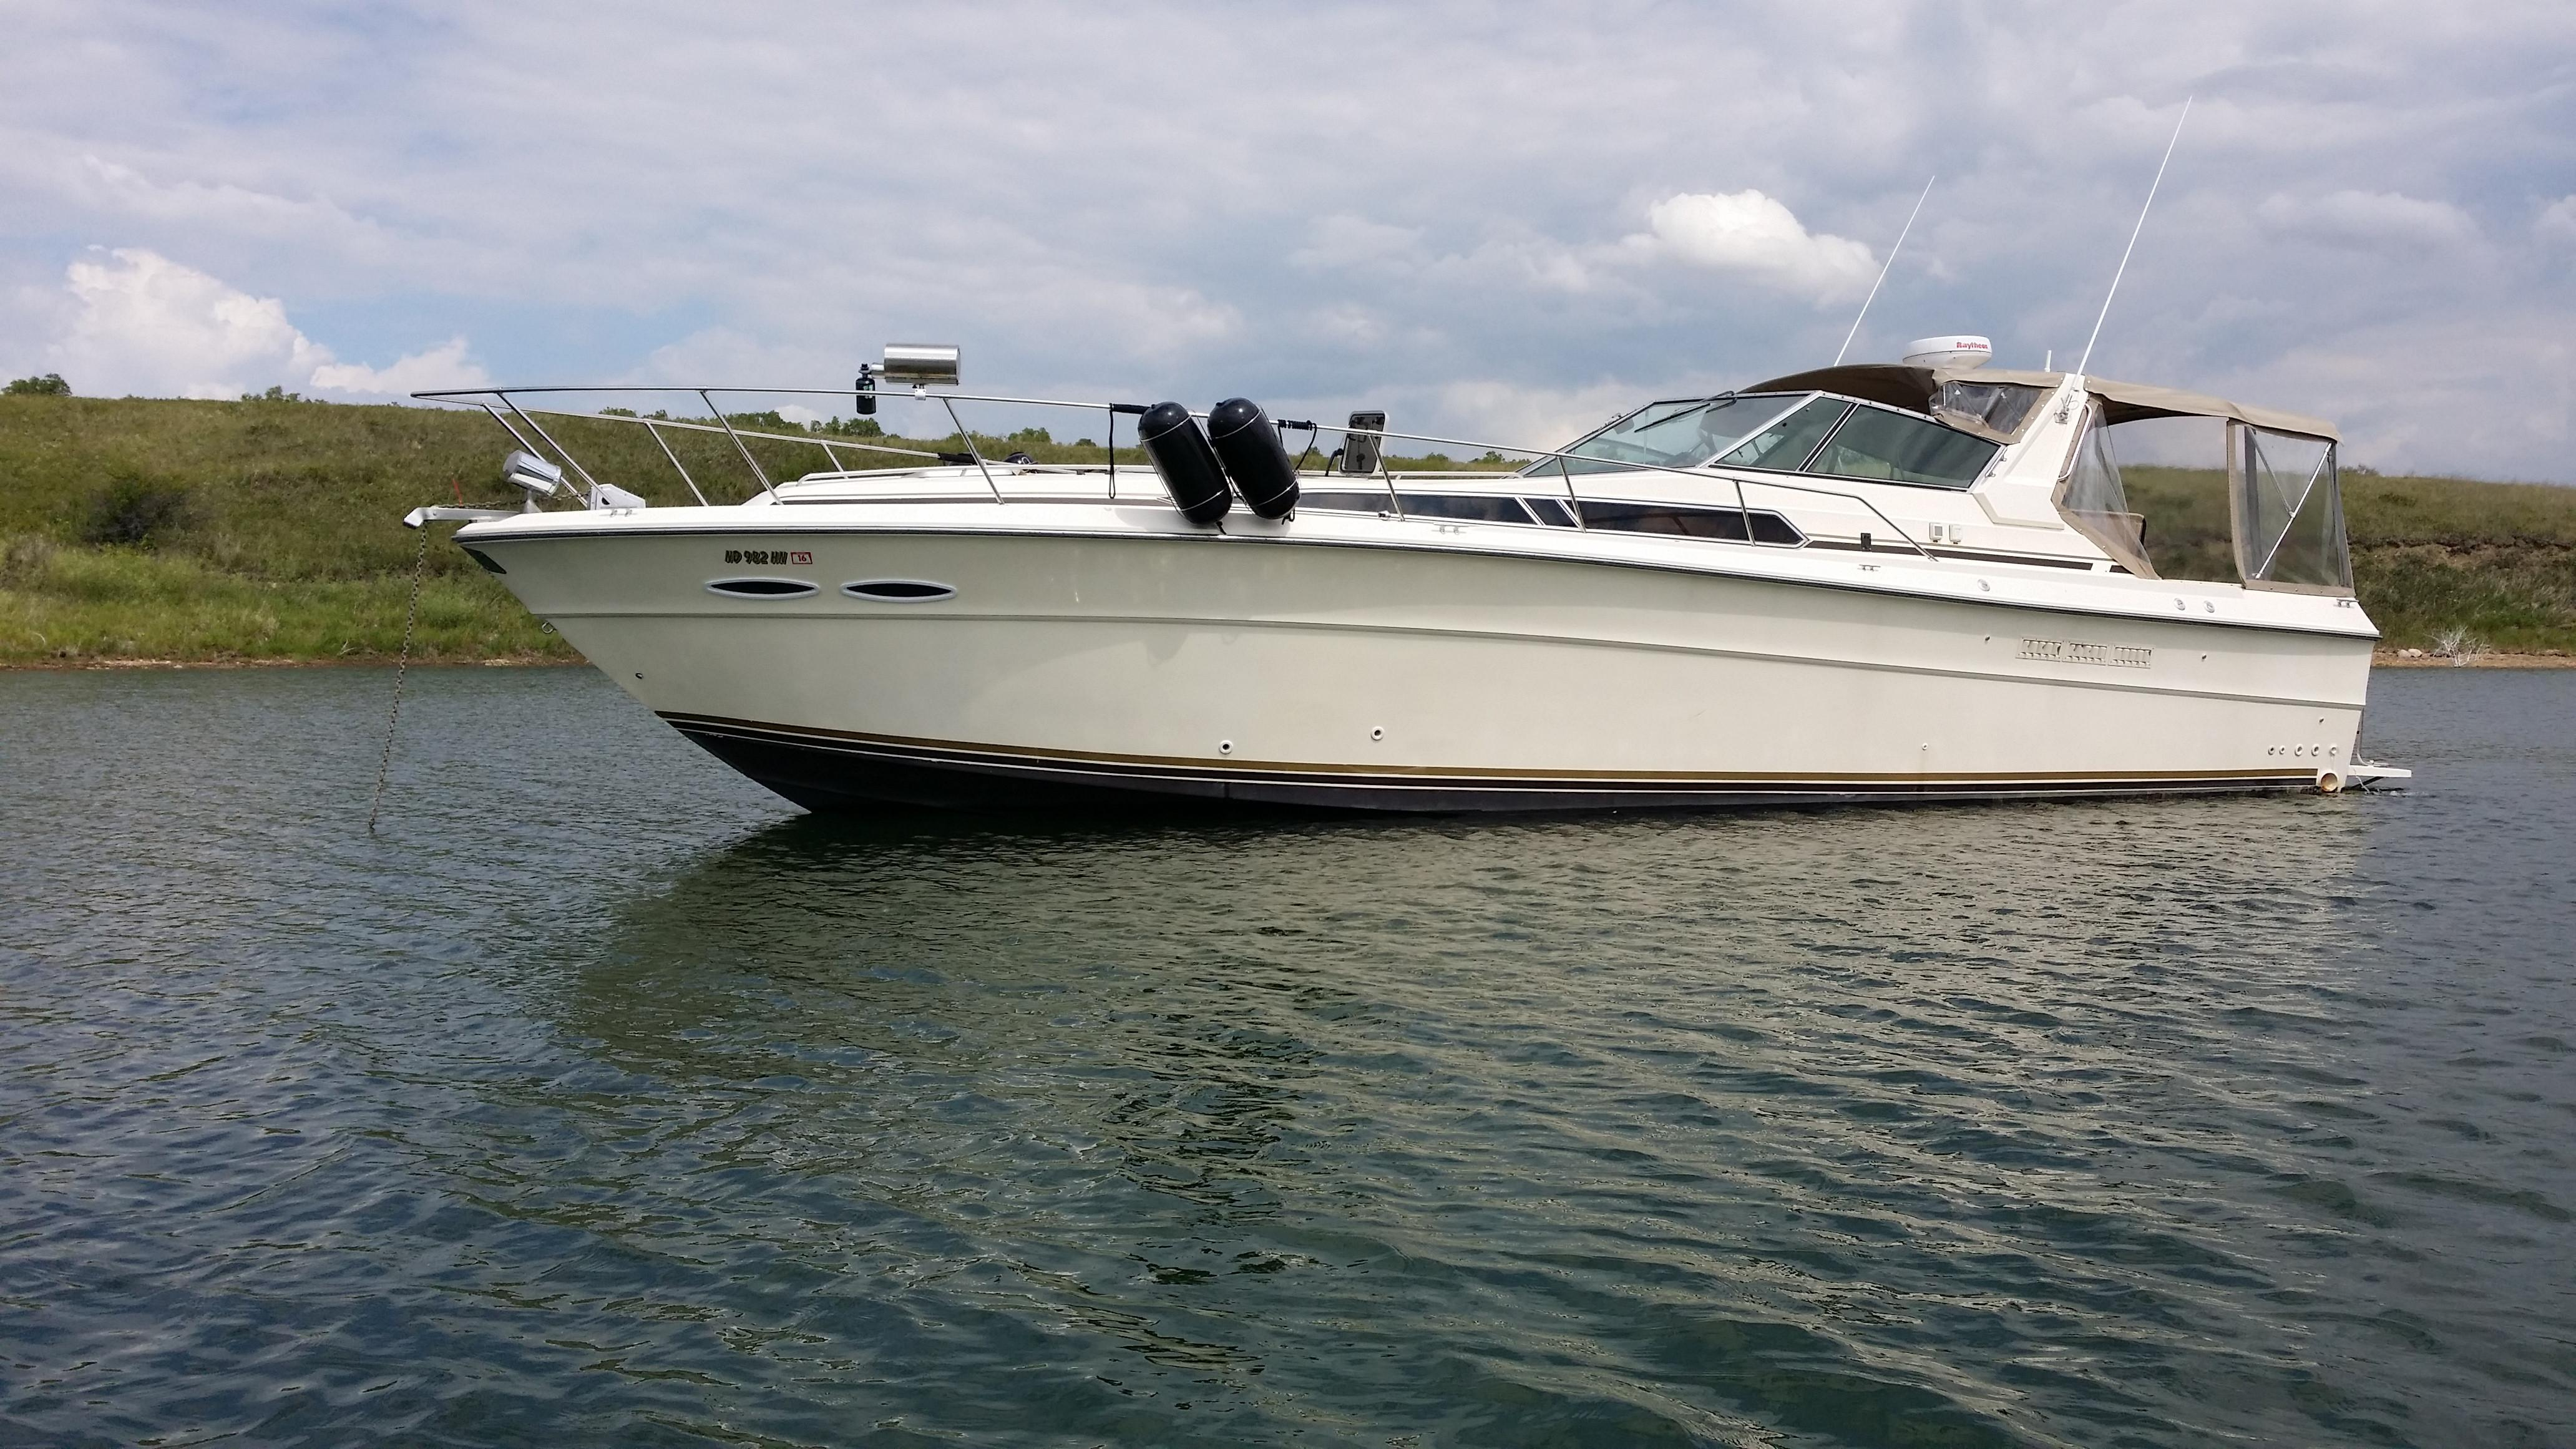 1986 Sea Ray 390 Express Cruiser Power Boat For Sale Www Yachtworld Com